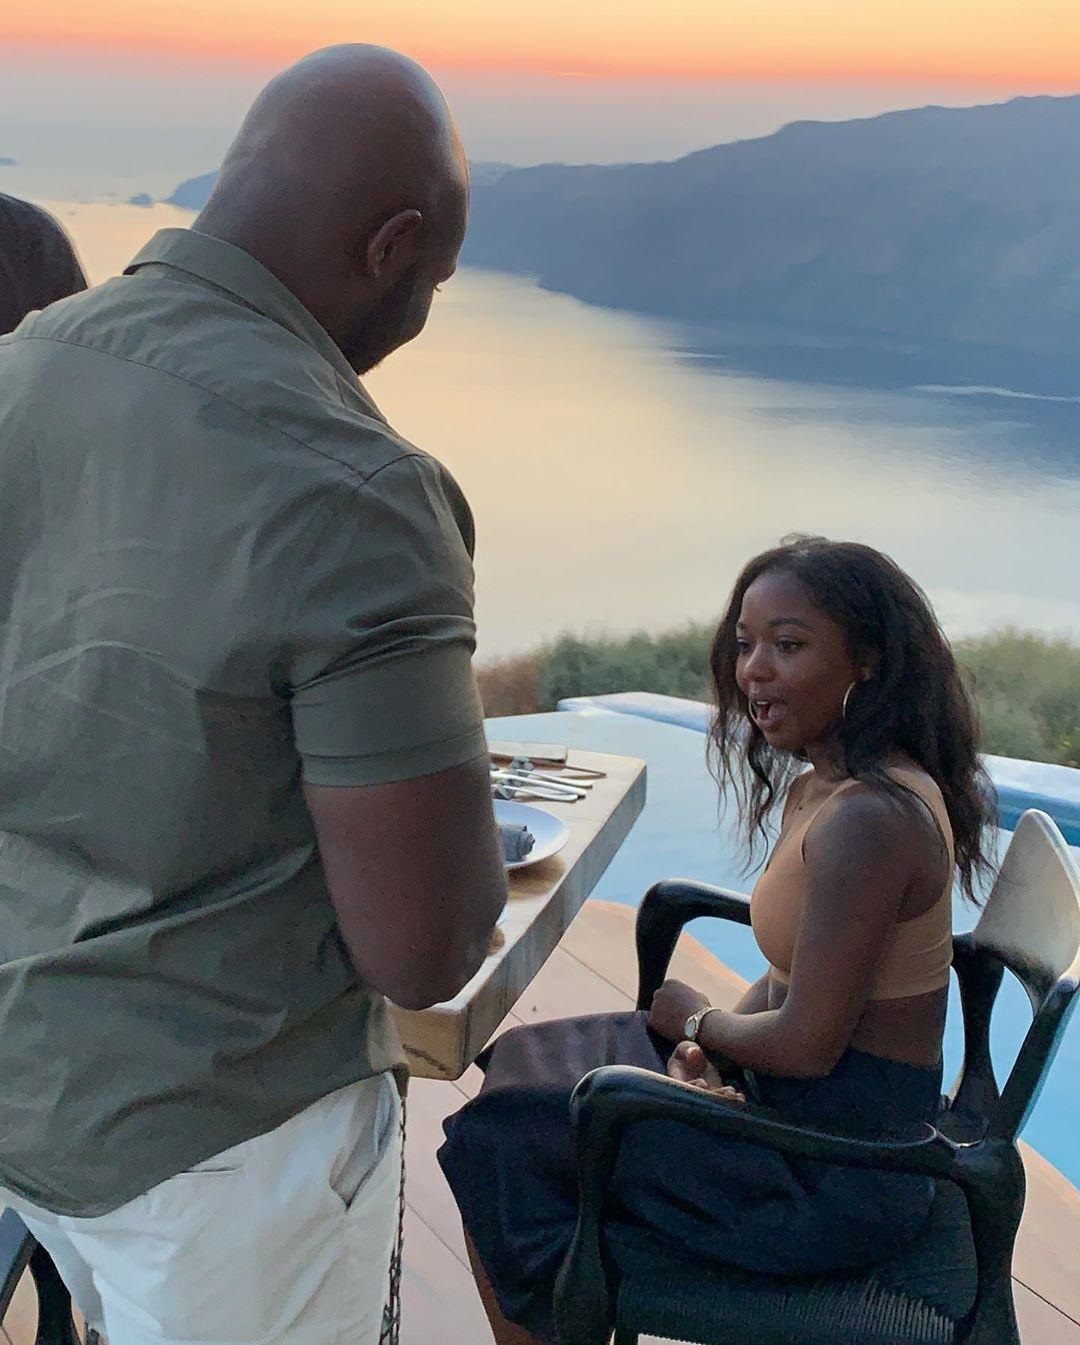 Laura and Henry's Romantic Proposal in Santorini Greece